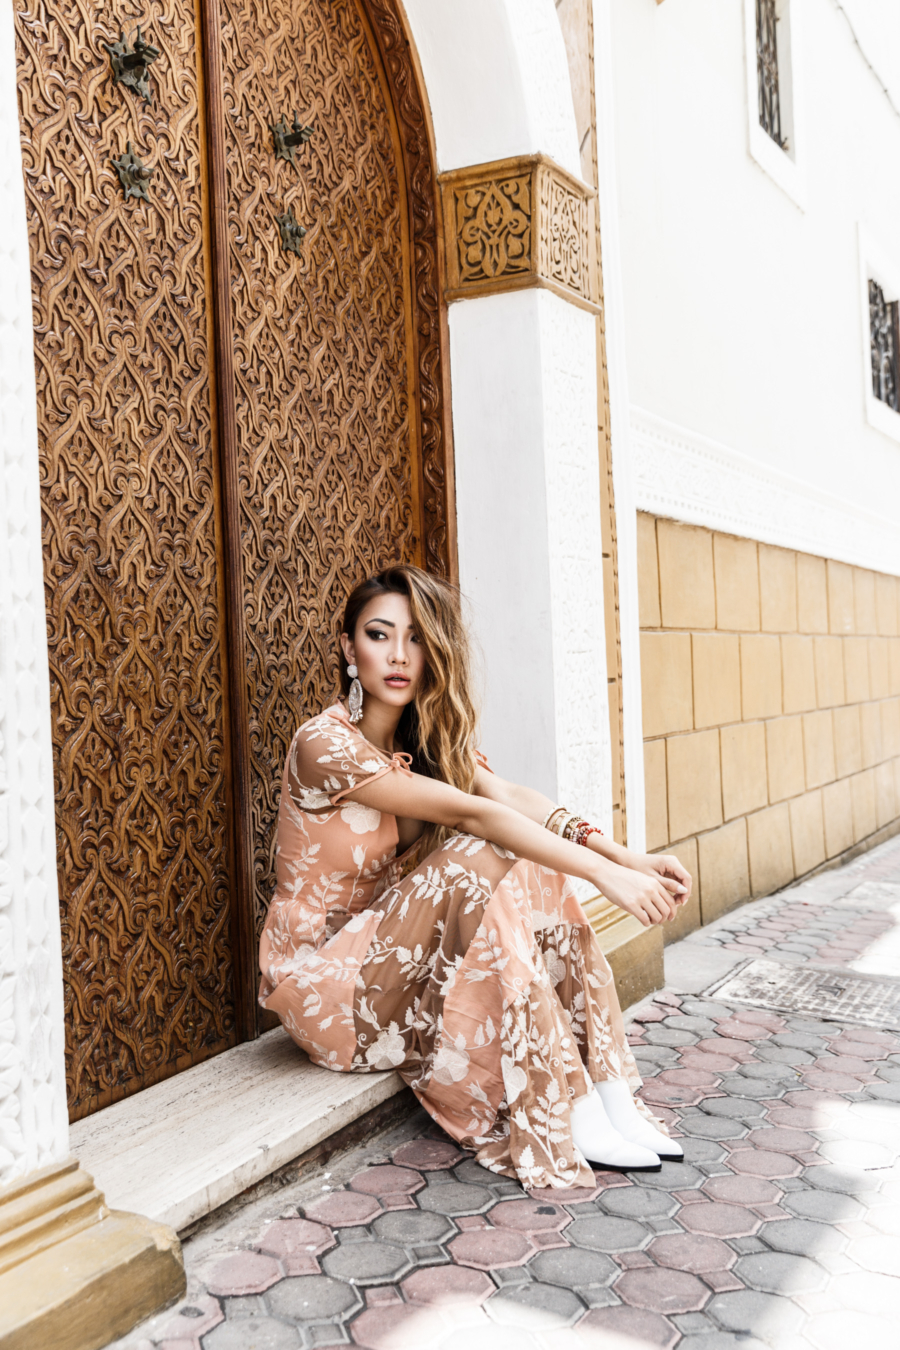 Four Seasons, Resort, Casablanca, Marrakesh, Morocco, NOTJESSFASHION, NYC, Top Fashion Blogger, Lifestyle Blogger, Travel Blogger